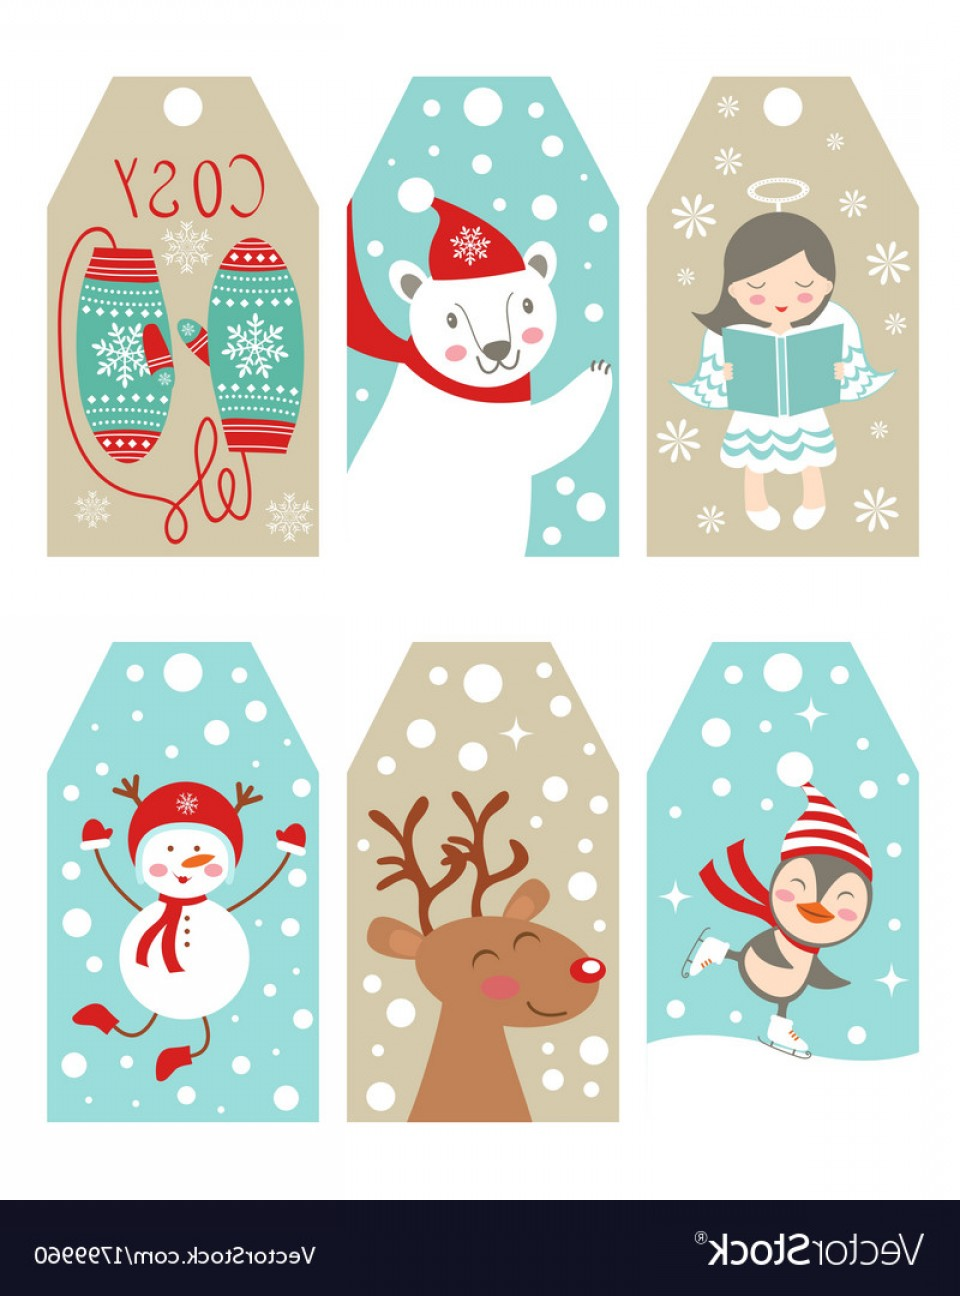 Gift Tags Vector Art: Christmas And New Year Gift Tags Vector